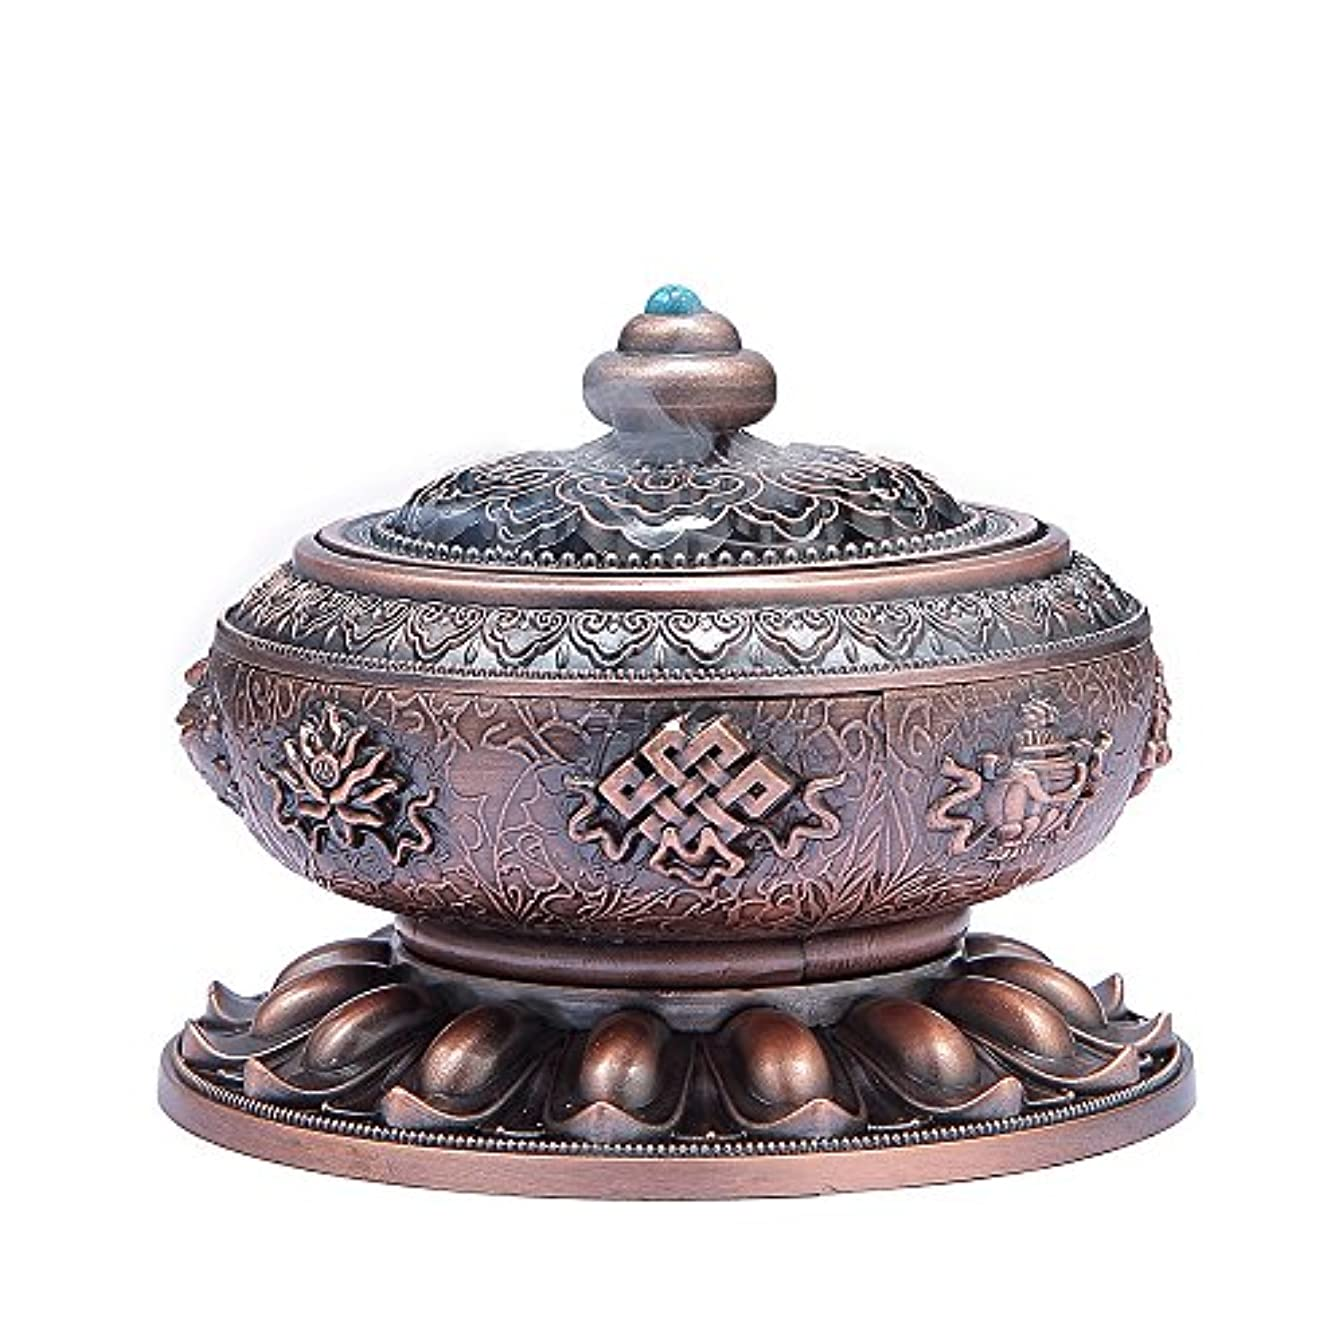 アシスタント失われた経験的MEDOOSKY Large Incense Holder Burner Tibet Lotus Copper Alloy( Stick/ Cone/ Coil Incense)